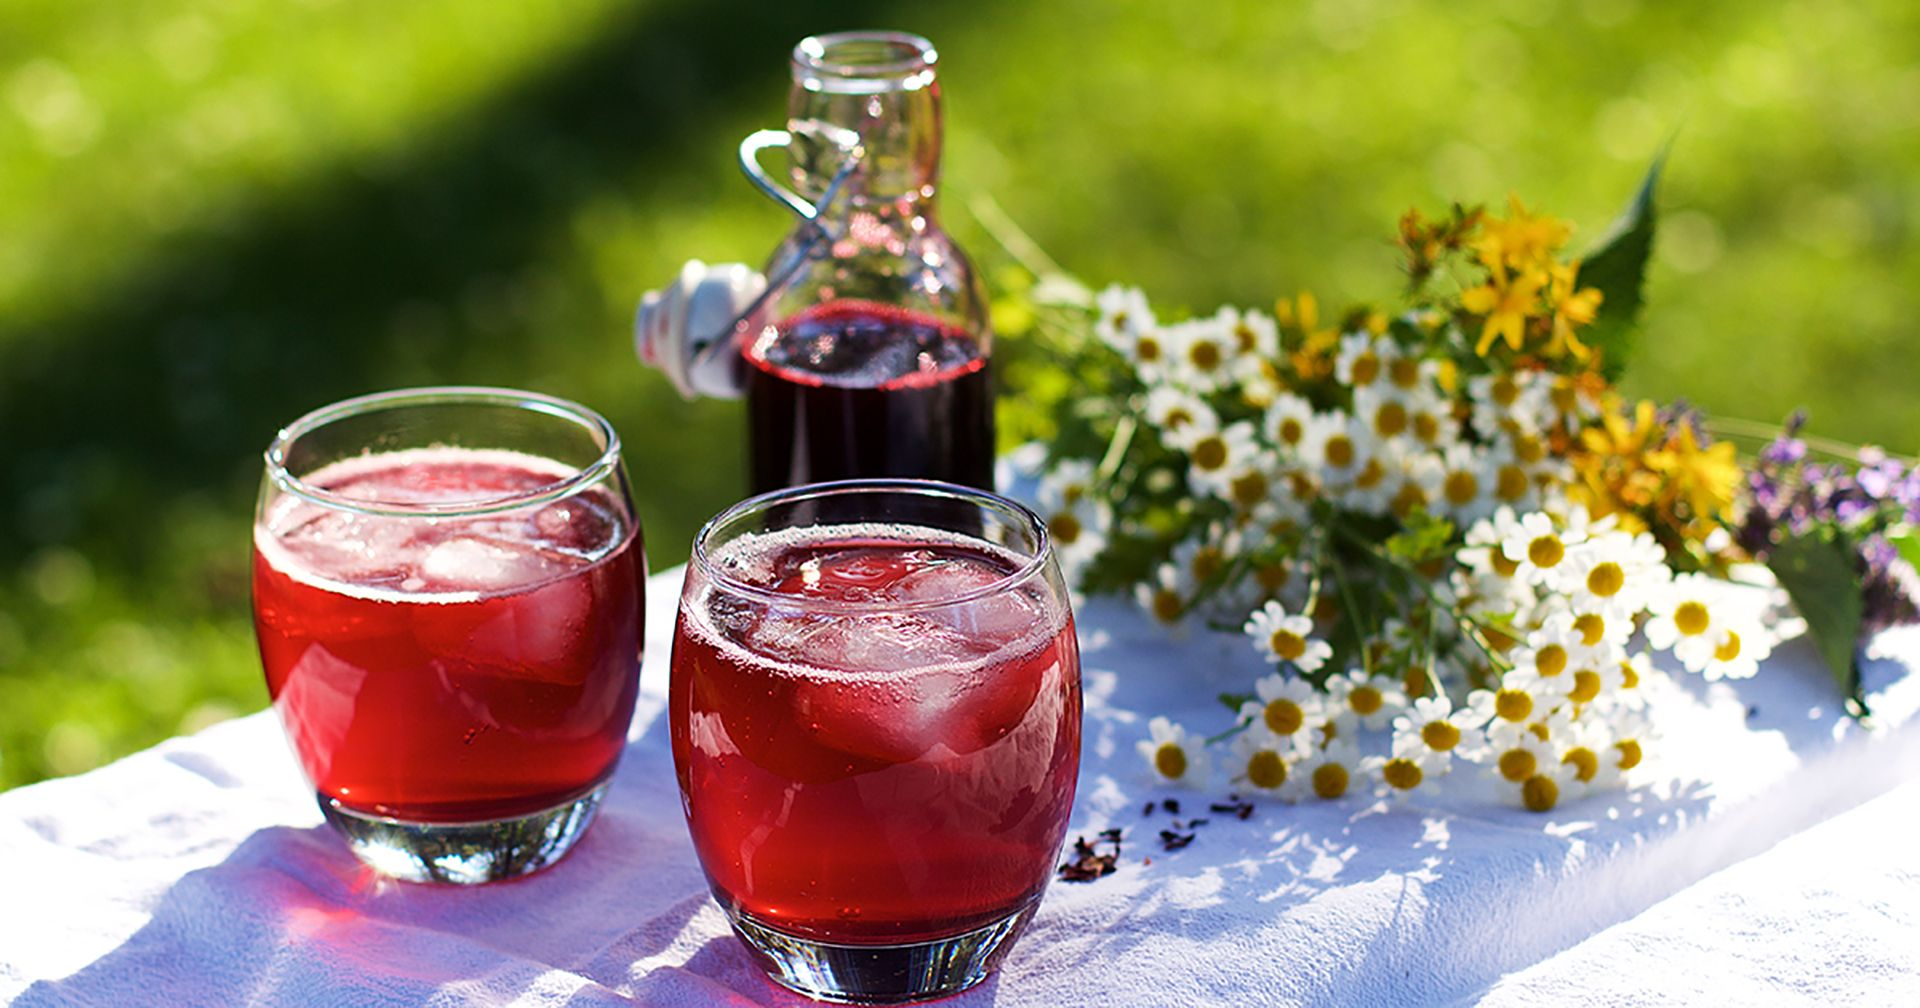 How To Make Your Own Hibiscus Syrup Learningherbs In 2020 Hibiscus Syrup Herbal Drinks Hibiscus Syrup Recipe